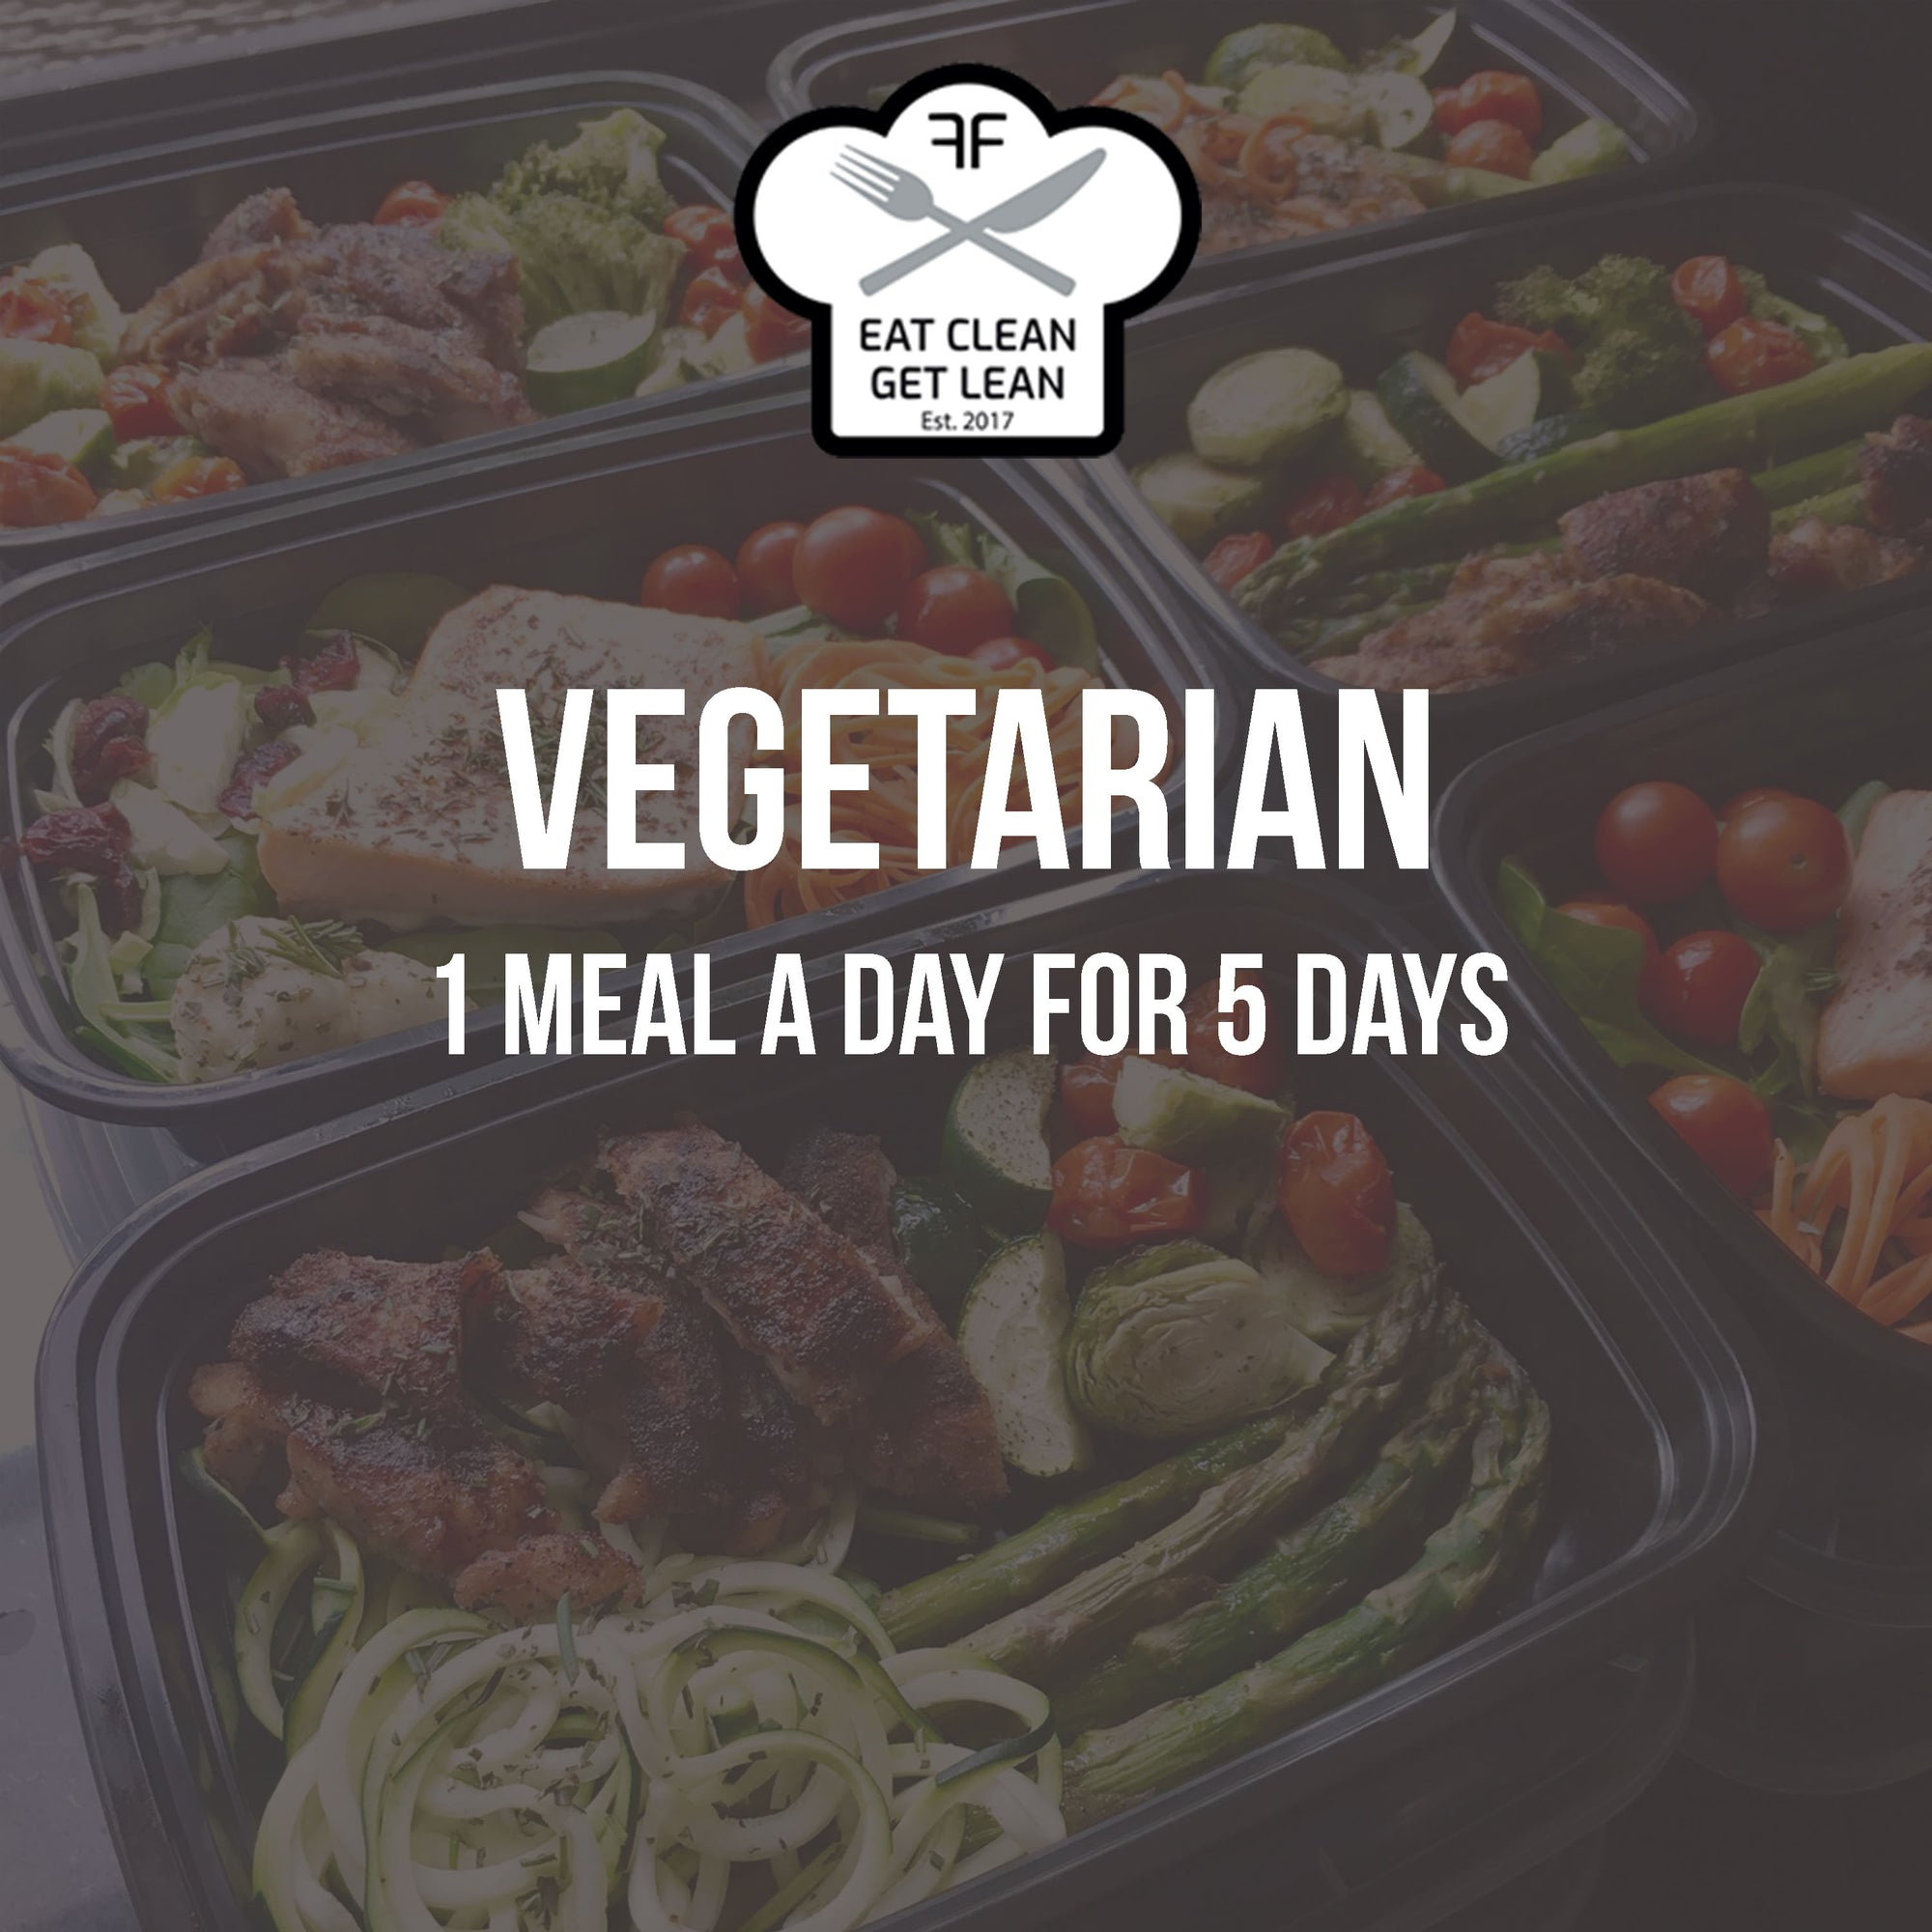 WEEKLY ORDER: 1 Vegetarian Meal a Day for 5 Days